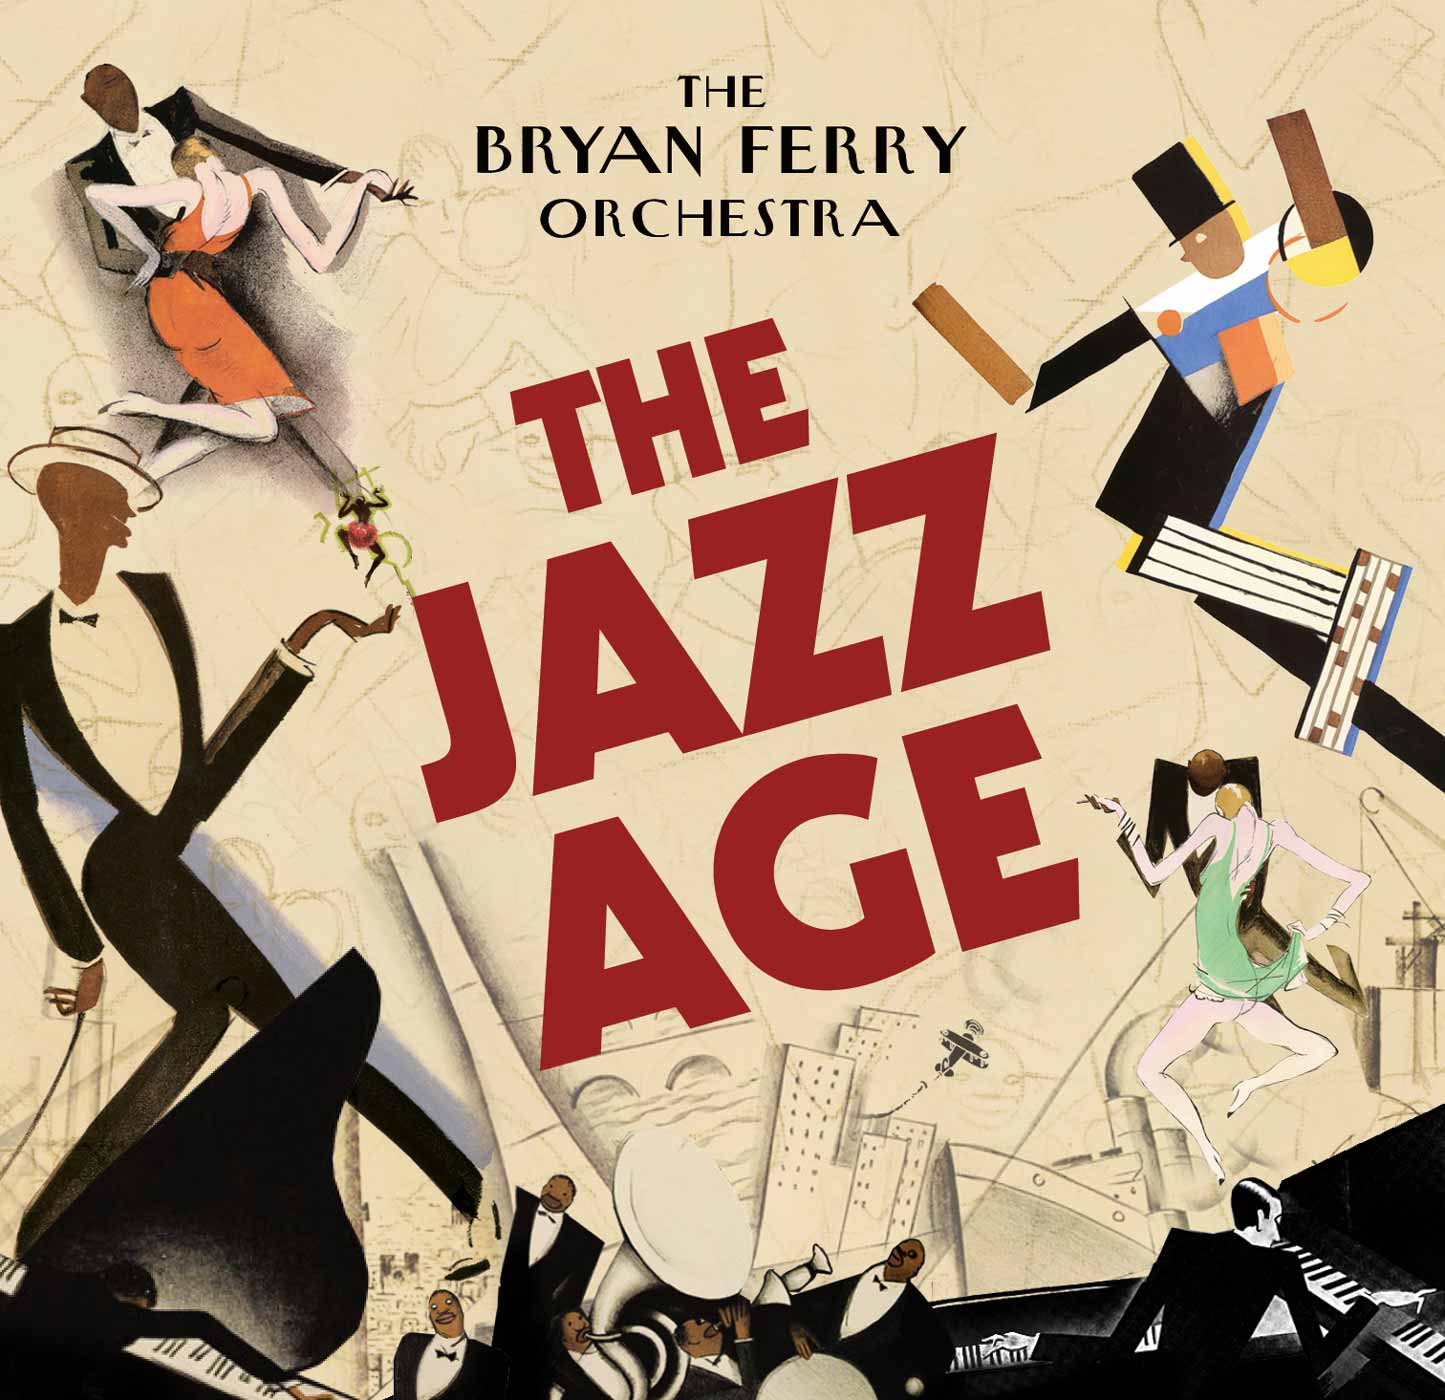 jazz the only true american music The music is only truly effective when everyone has their fundamental skills together – everyone matters – and yet everyone has different roles at different and since democracy is an important part of america's identity and cultural heritage, jazz music reflects, expresses, and models america's best values.